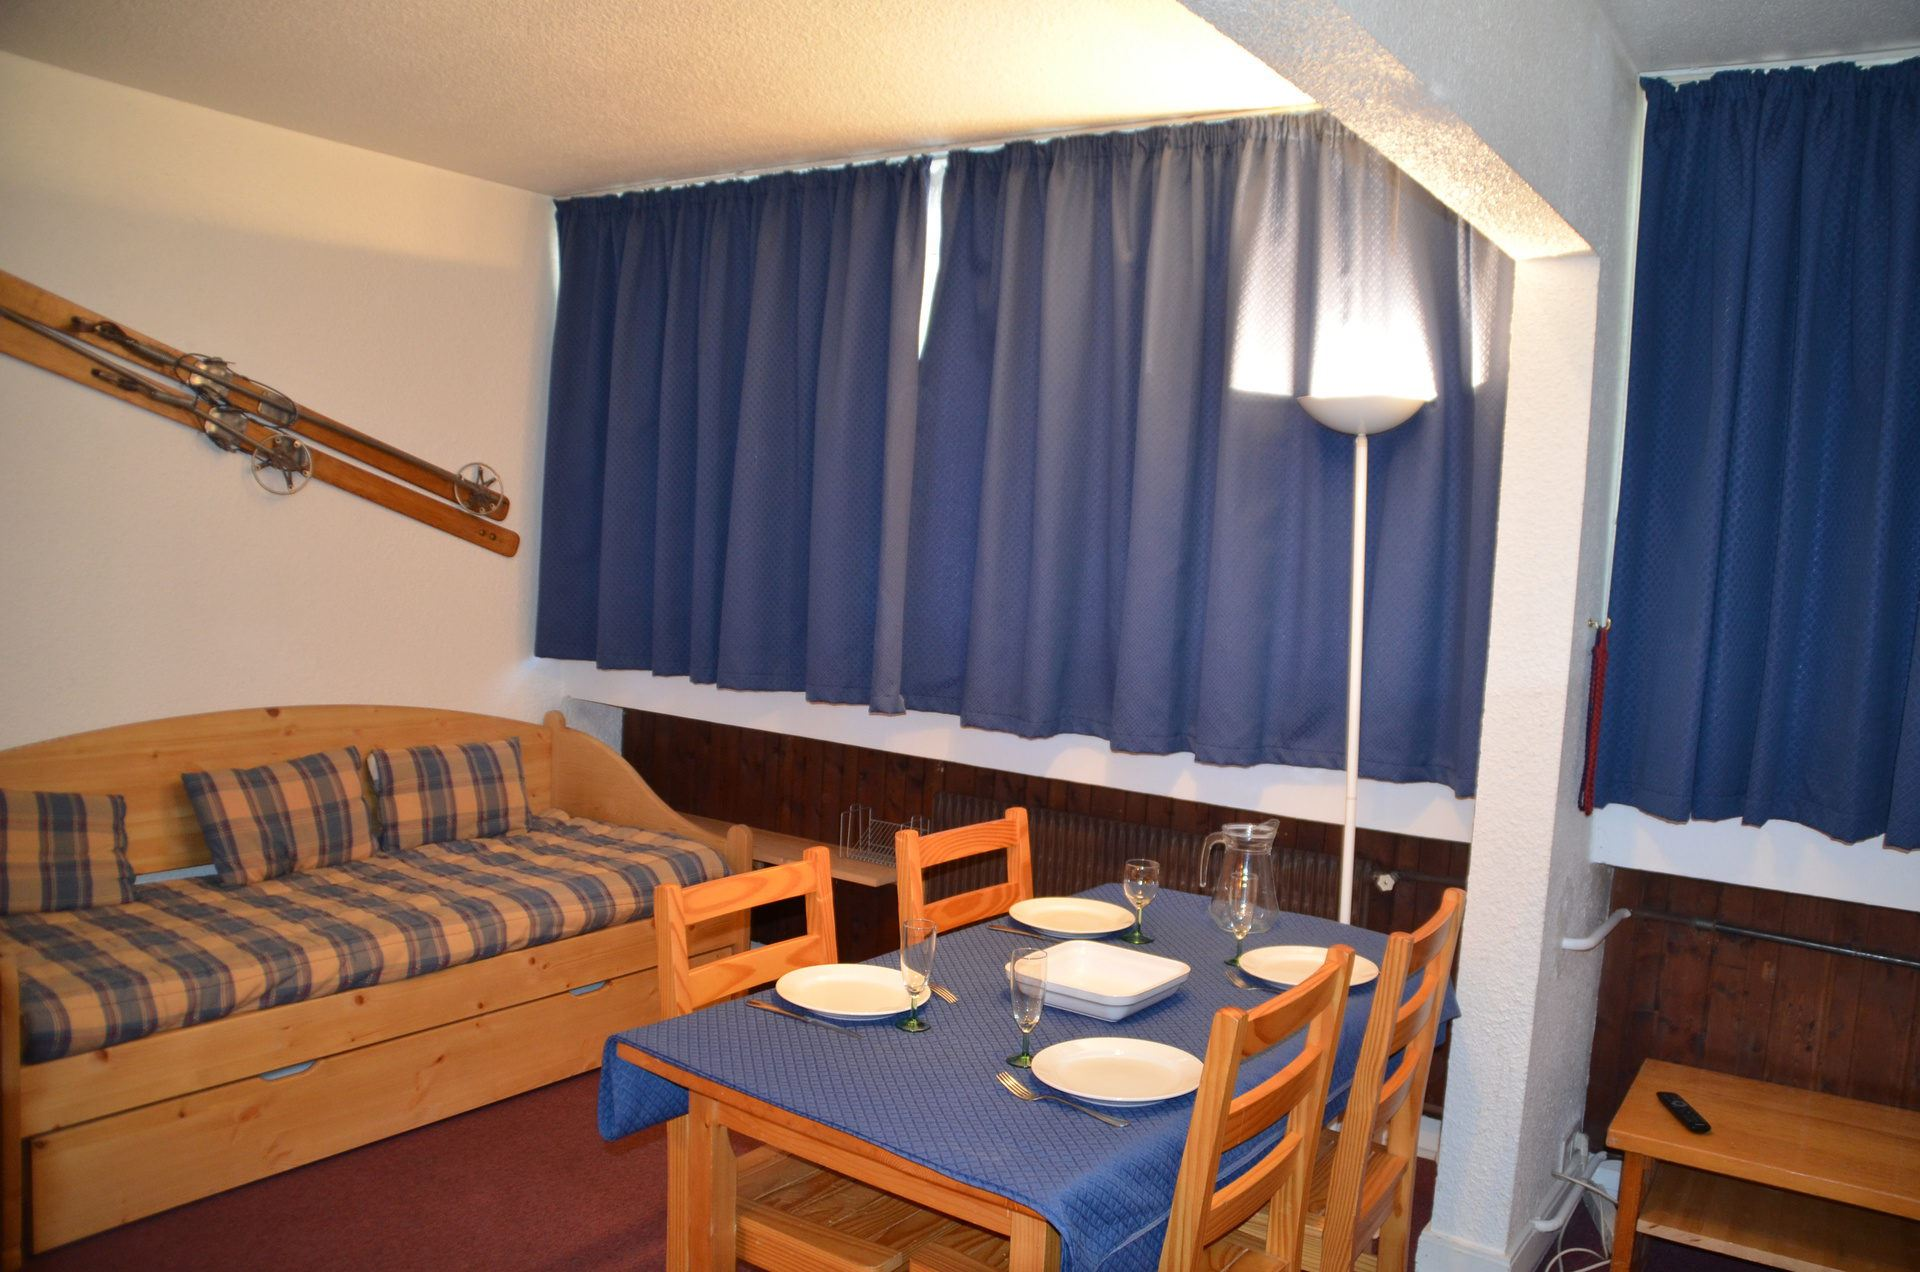 2 Rooms 4 Pers ski-in ski-out / BEAUFORTAIN 24